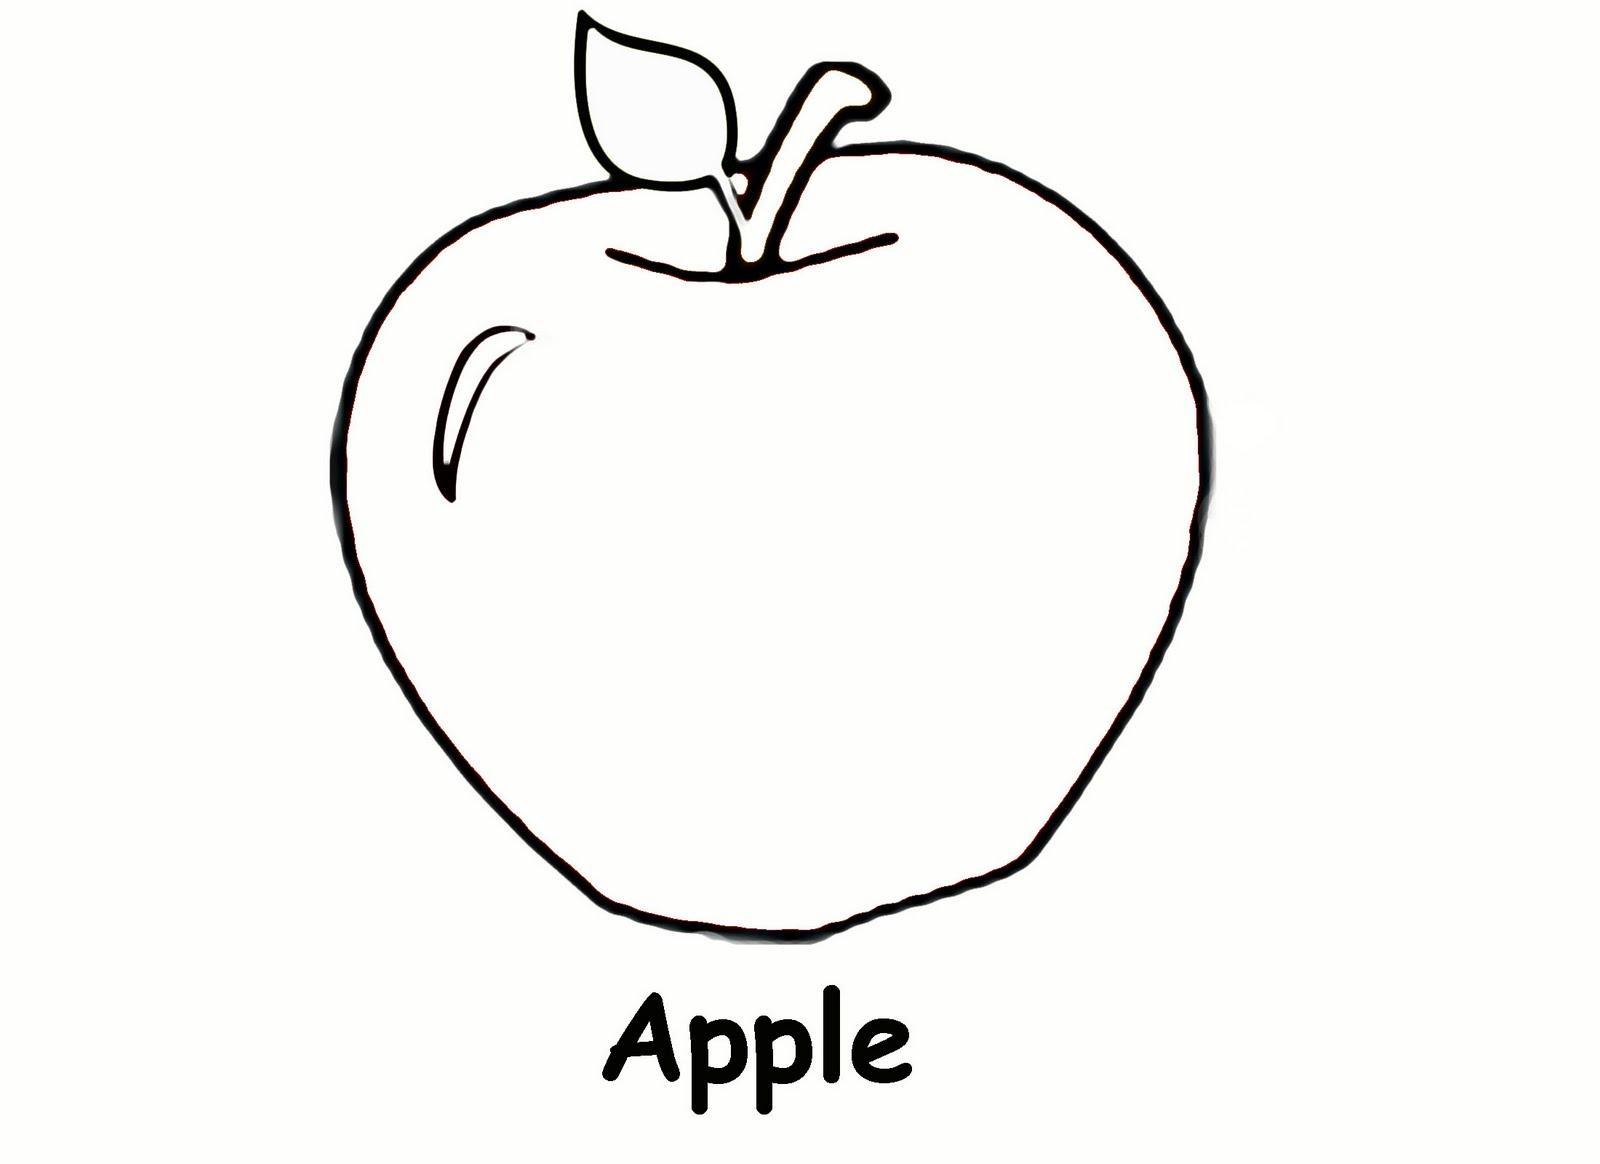 coloring book pages free - free printable apple coloring pages for kids